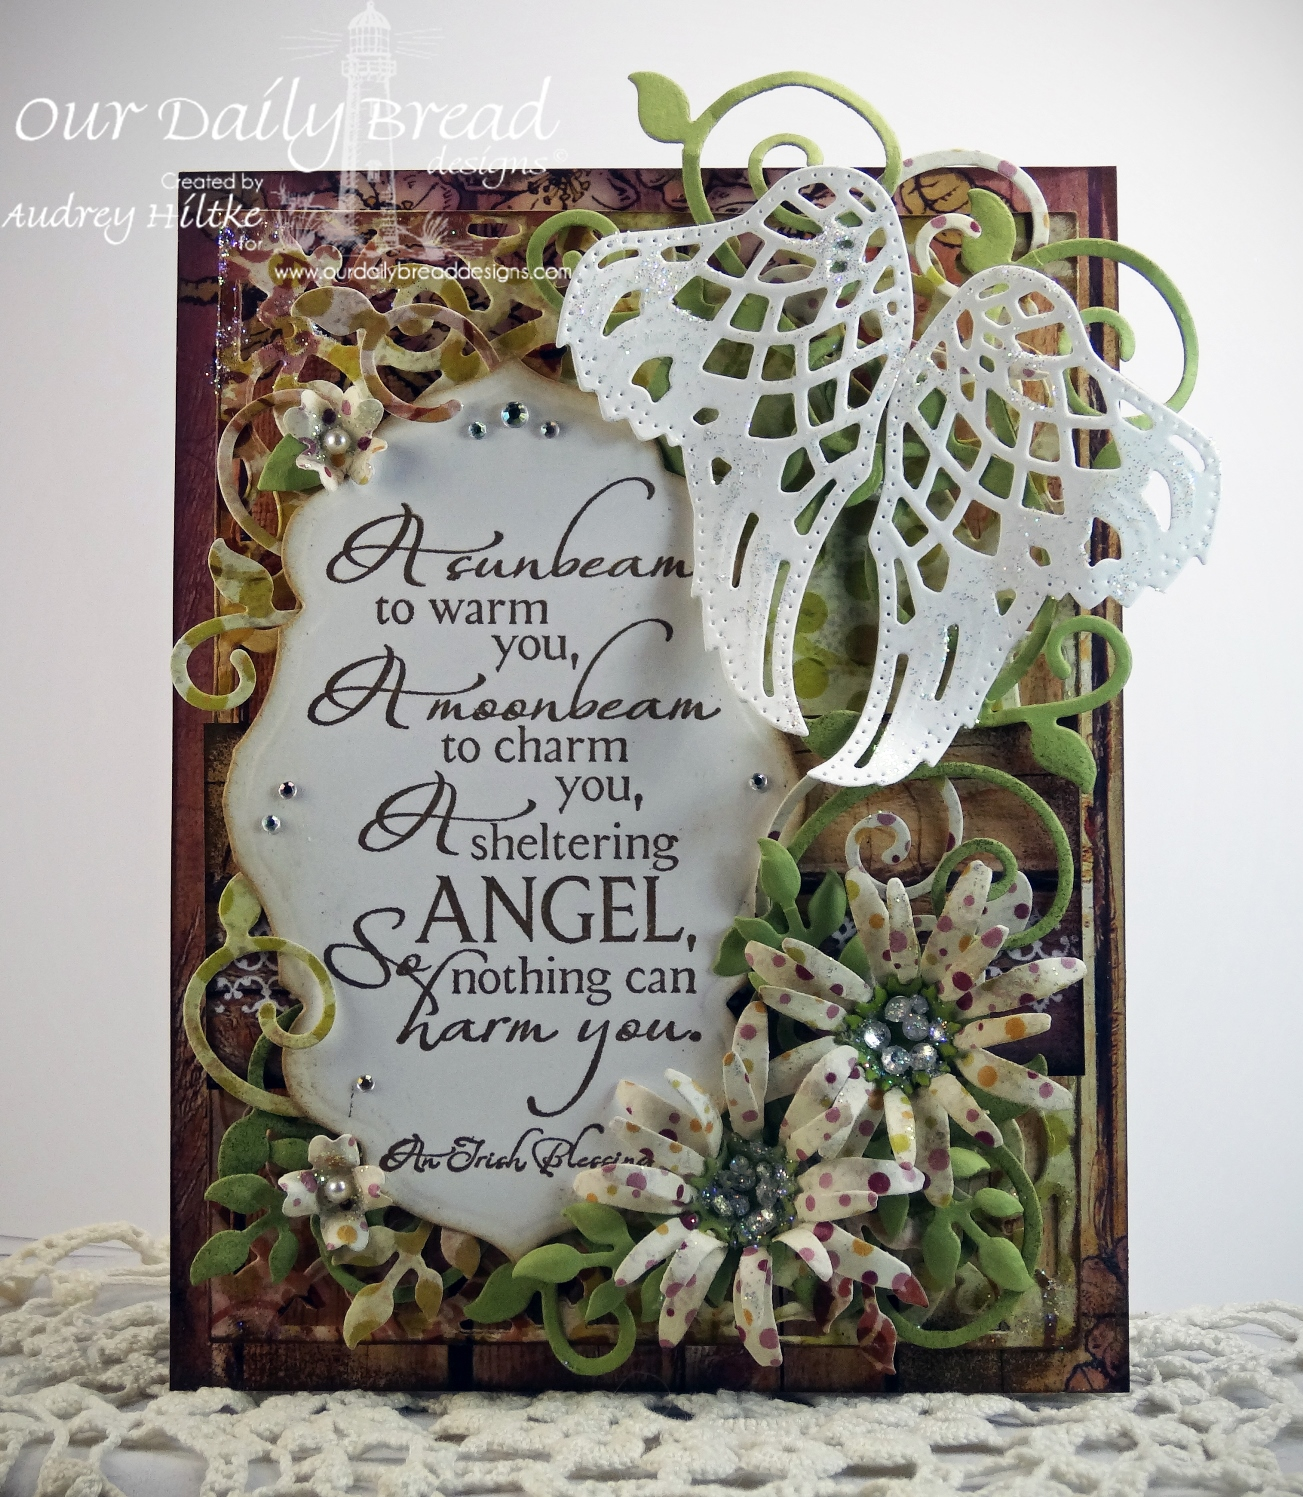 Stamps - Our Daily Bread Designs Sheltering Angel, ODBD Rustic Beauty Paper Collection, ODBD Custom Angel Wings Die, ODBD Custom Ornamental Crosses Die, ODBD Custom Antique Labels and Border Dies, ODBD Custom Fancy Foliage Die